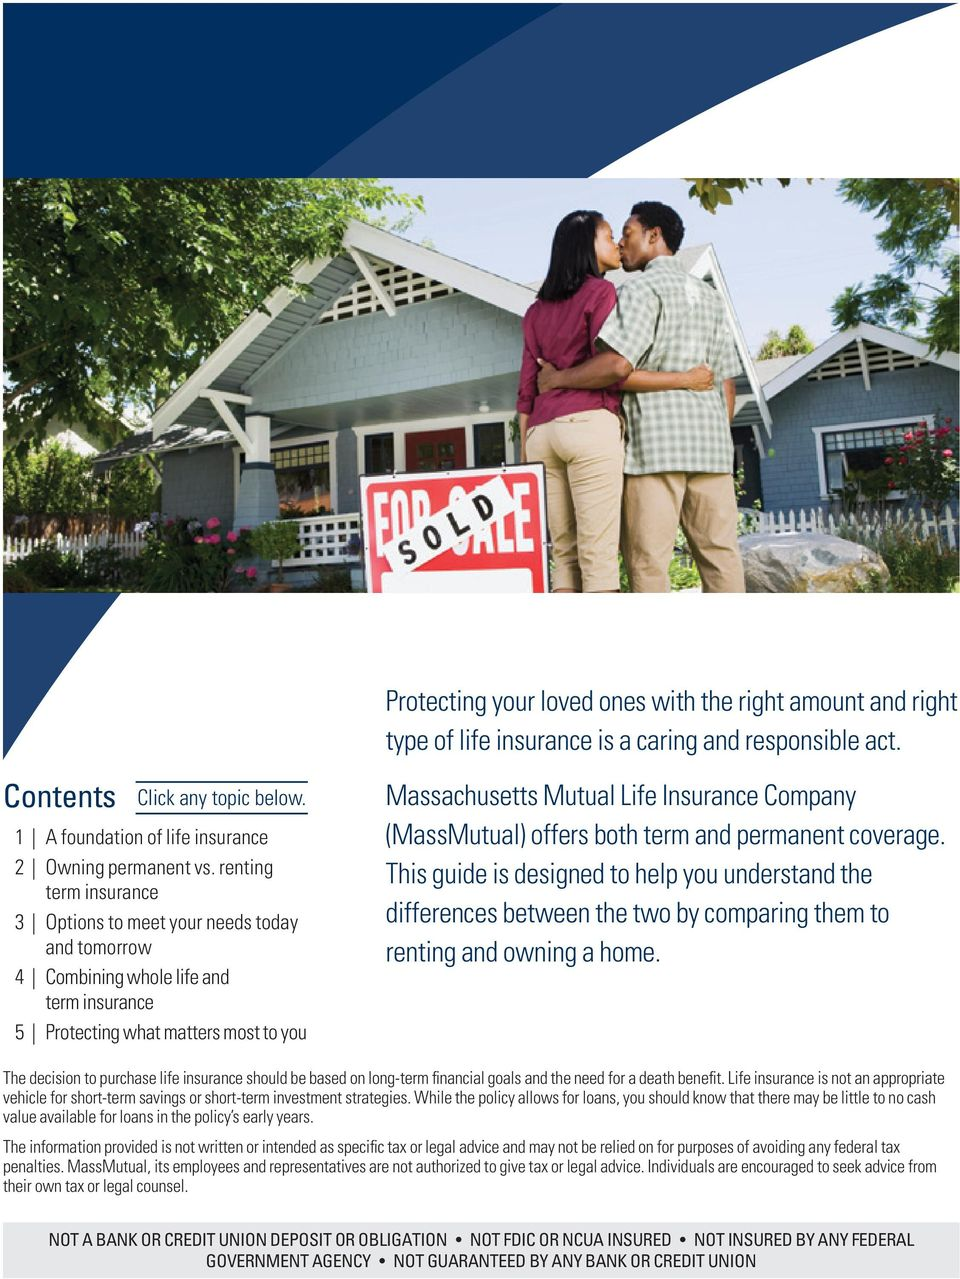 (MassMutual) offers both term and permanent coverage. This guide is designed to help you understand the differences between the two by comparing them to renting and owning a home.